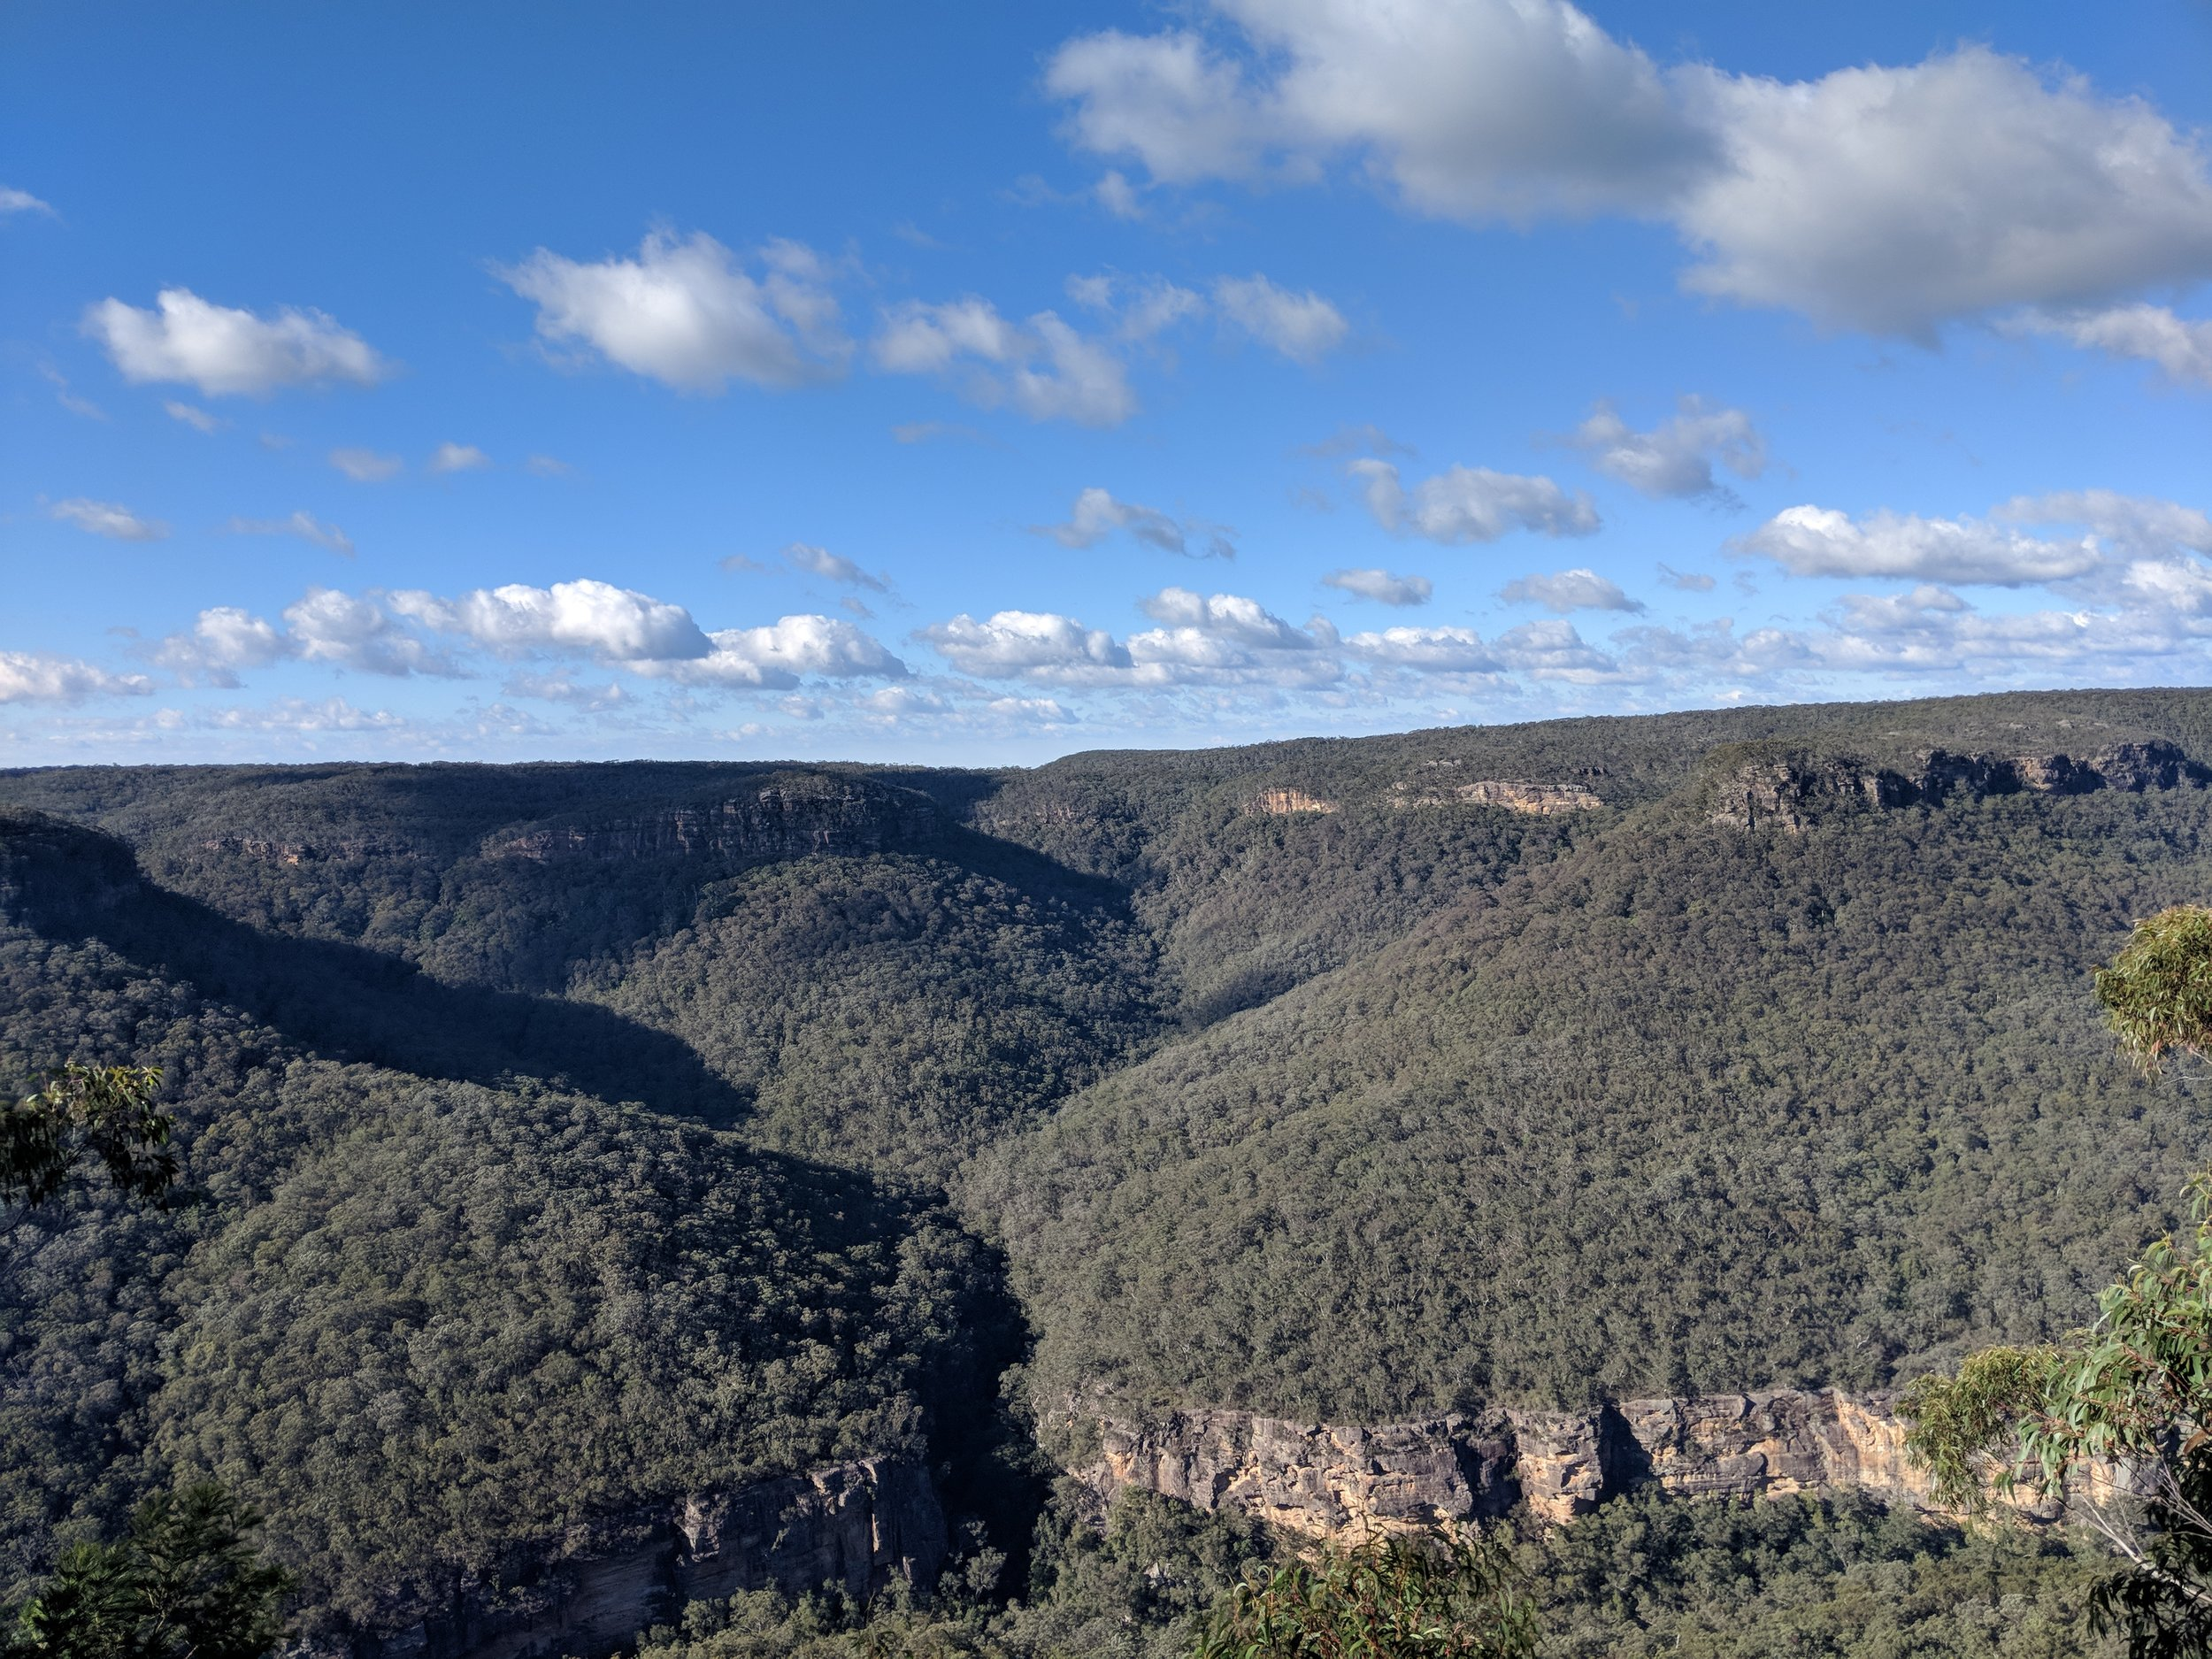 Copy of DRIVE 4 MINUTES AND ENJOY THE VIEWS OF MORTON NATIONAL PARK